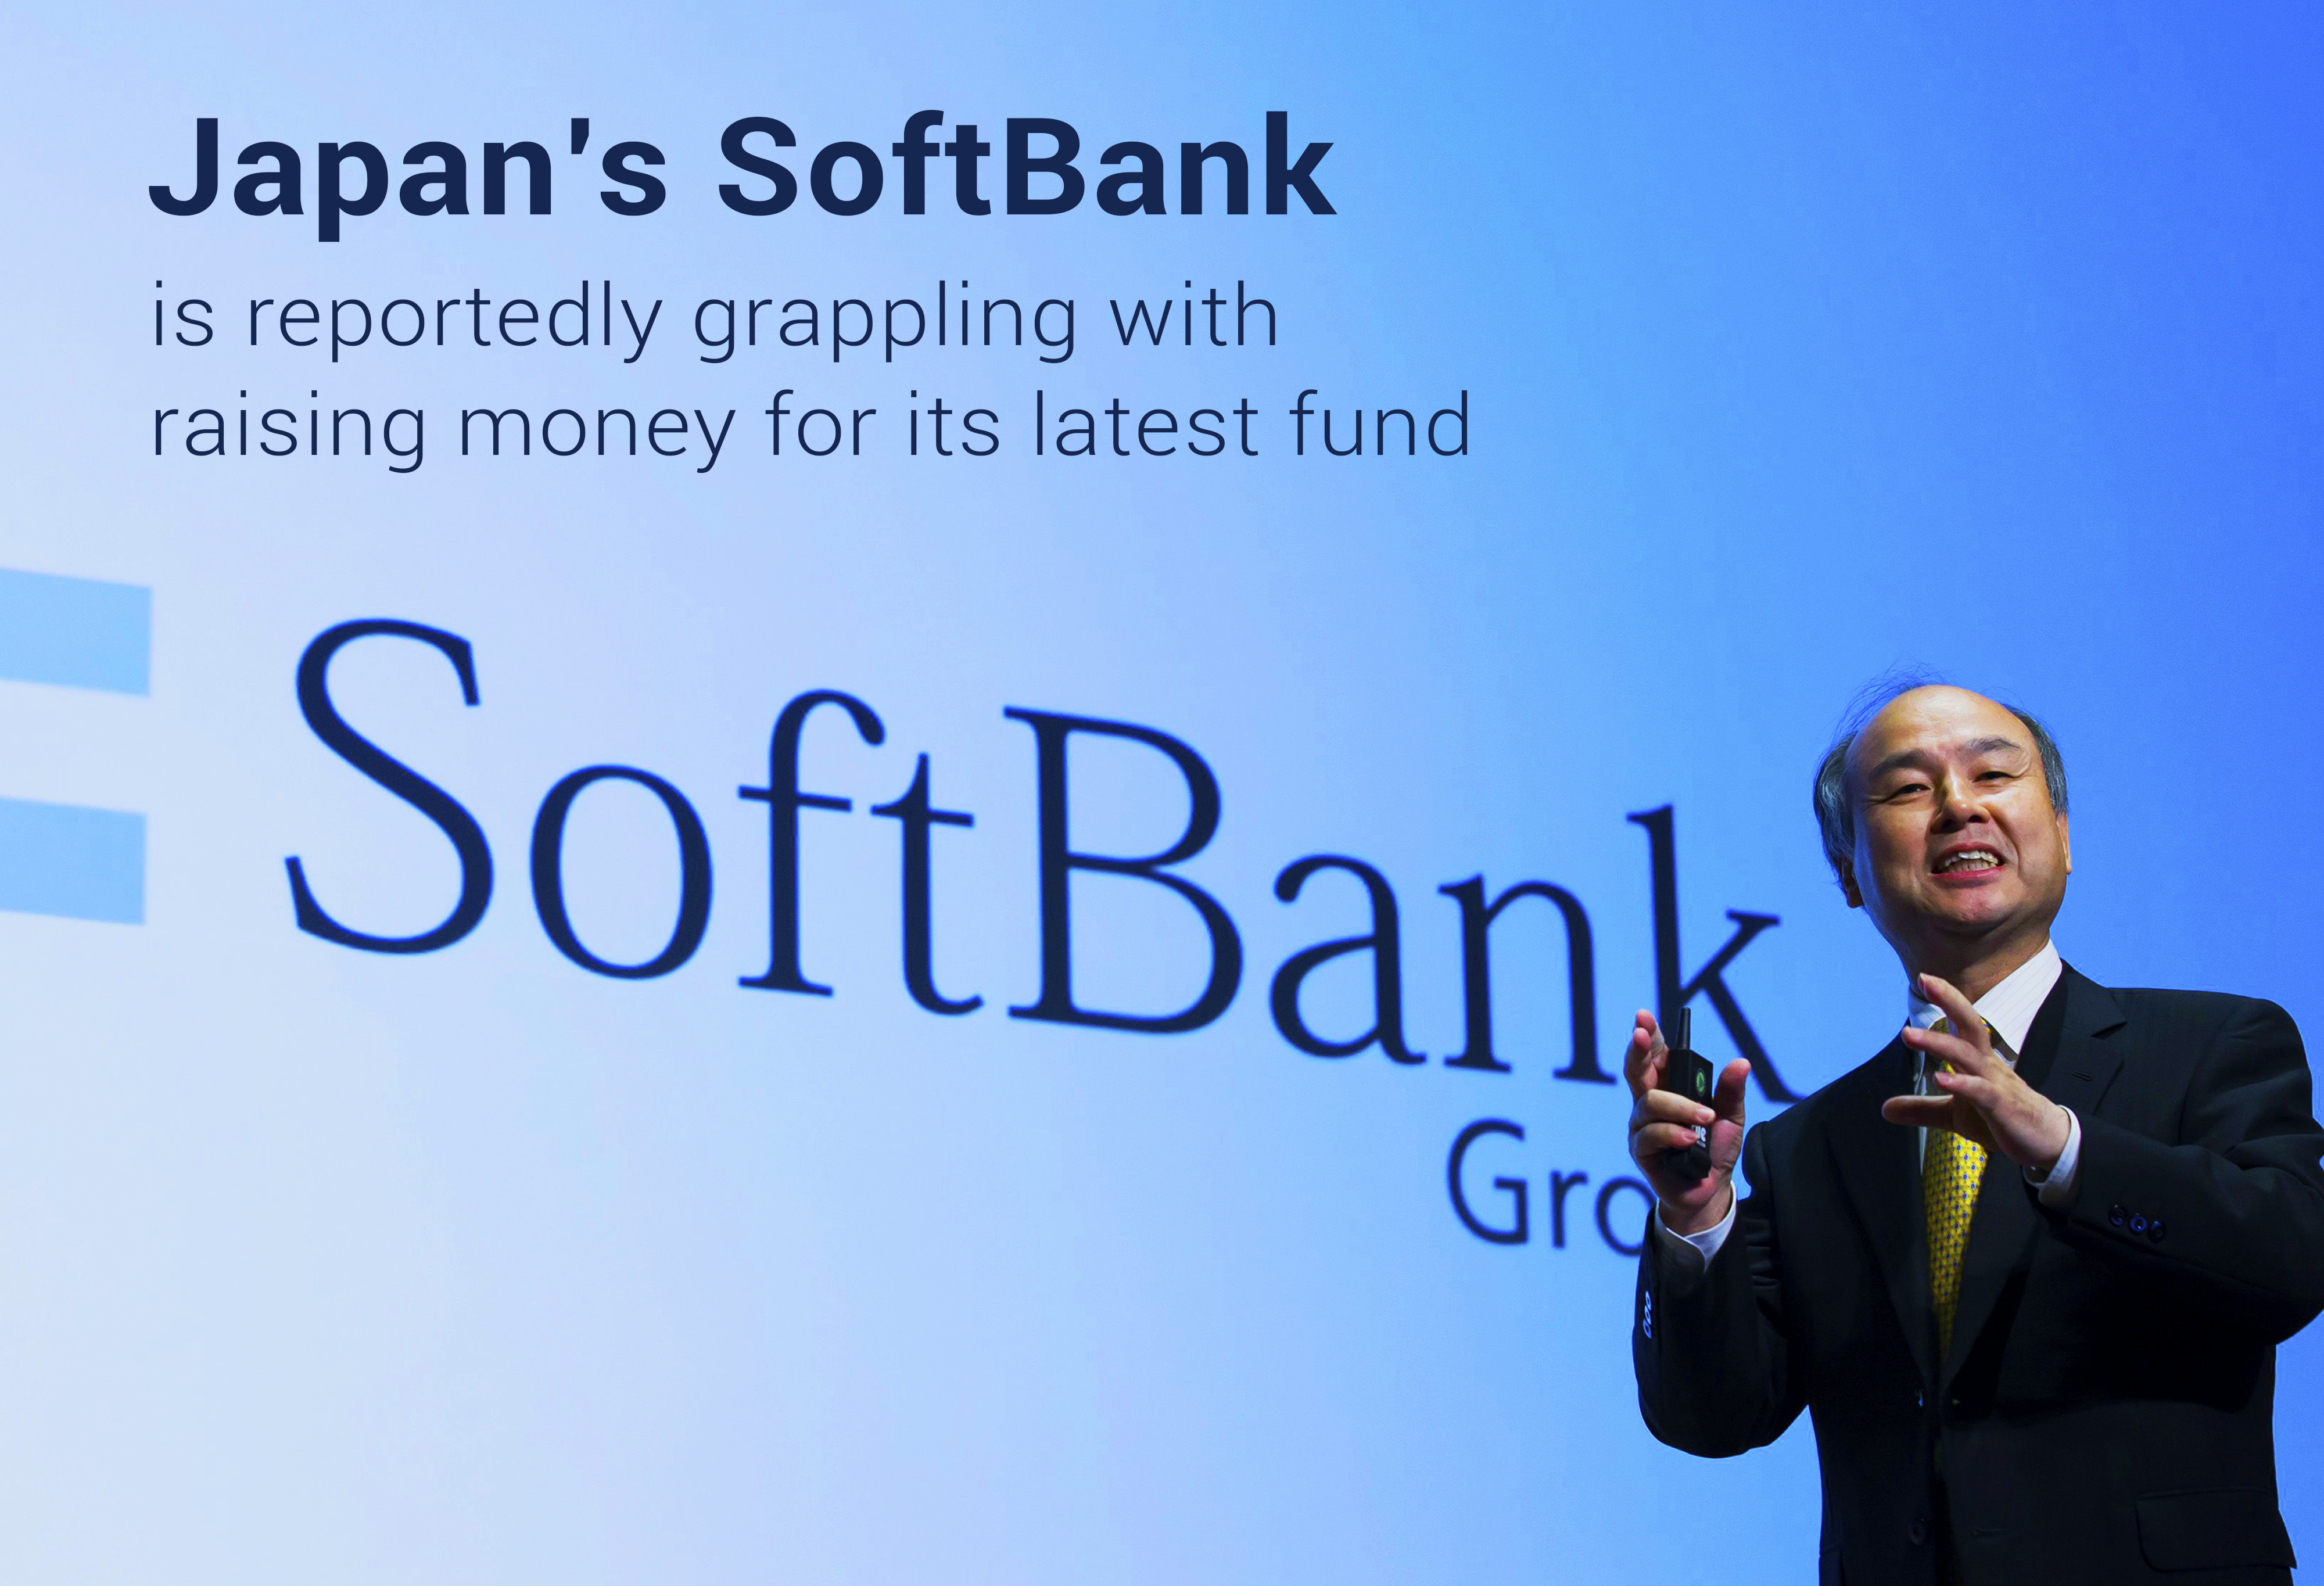 Softbank of Japan is grappling with Money Raising for Latest Fund